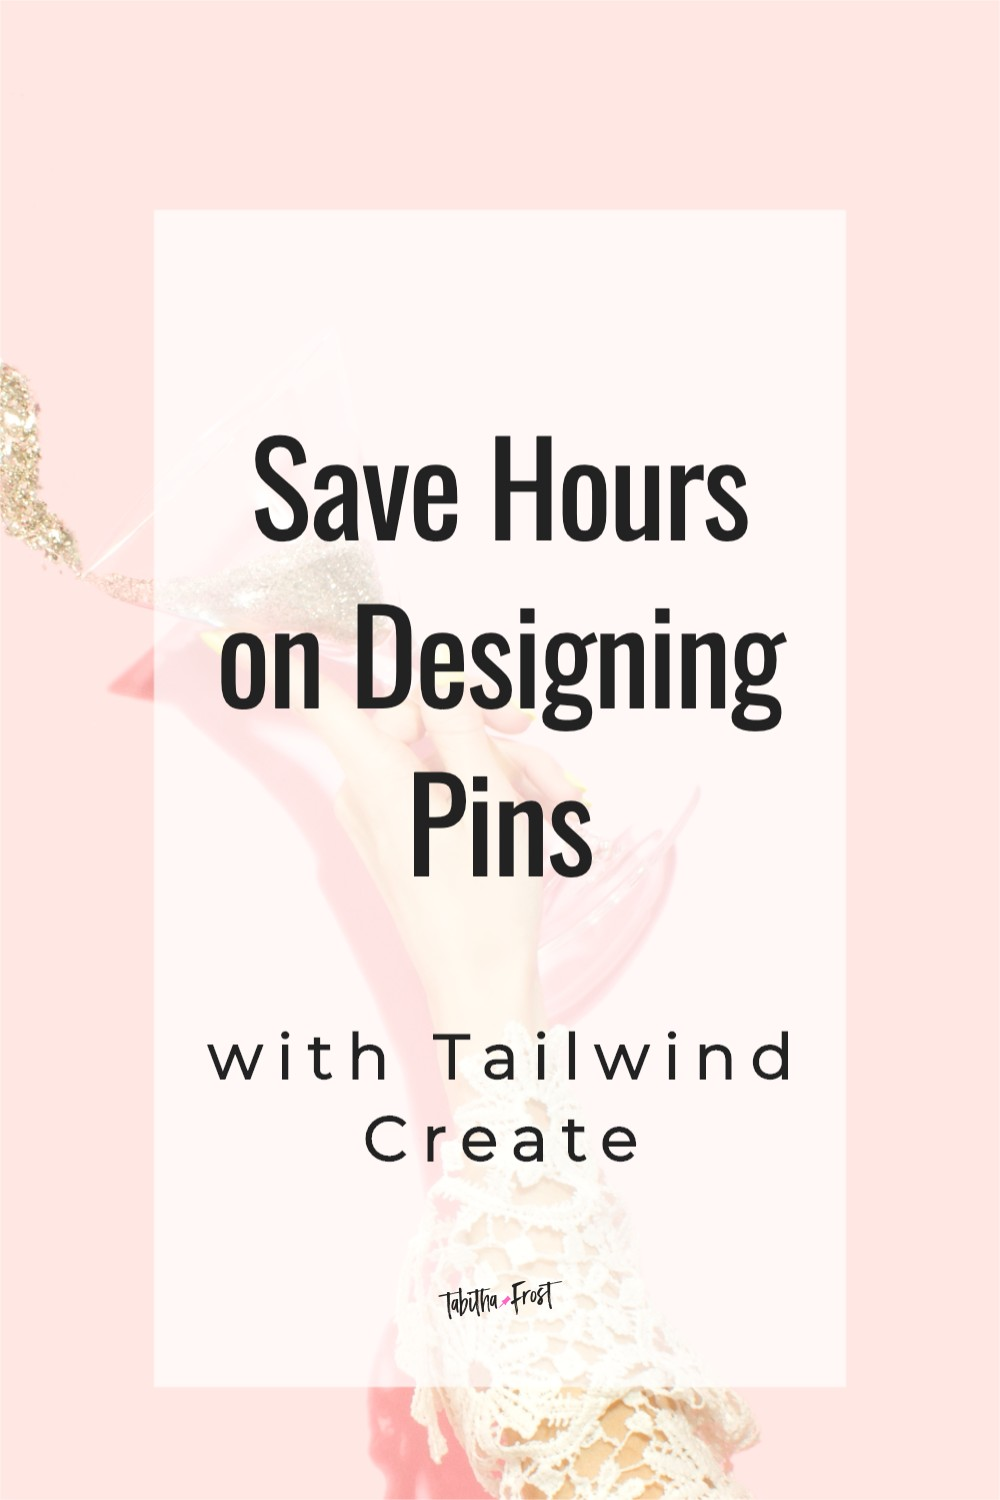 Save Hours on Designing Pins with Tailwind Create